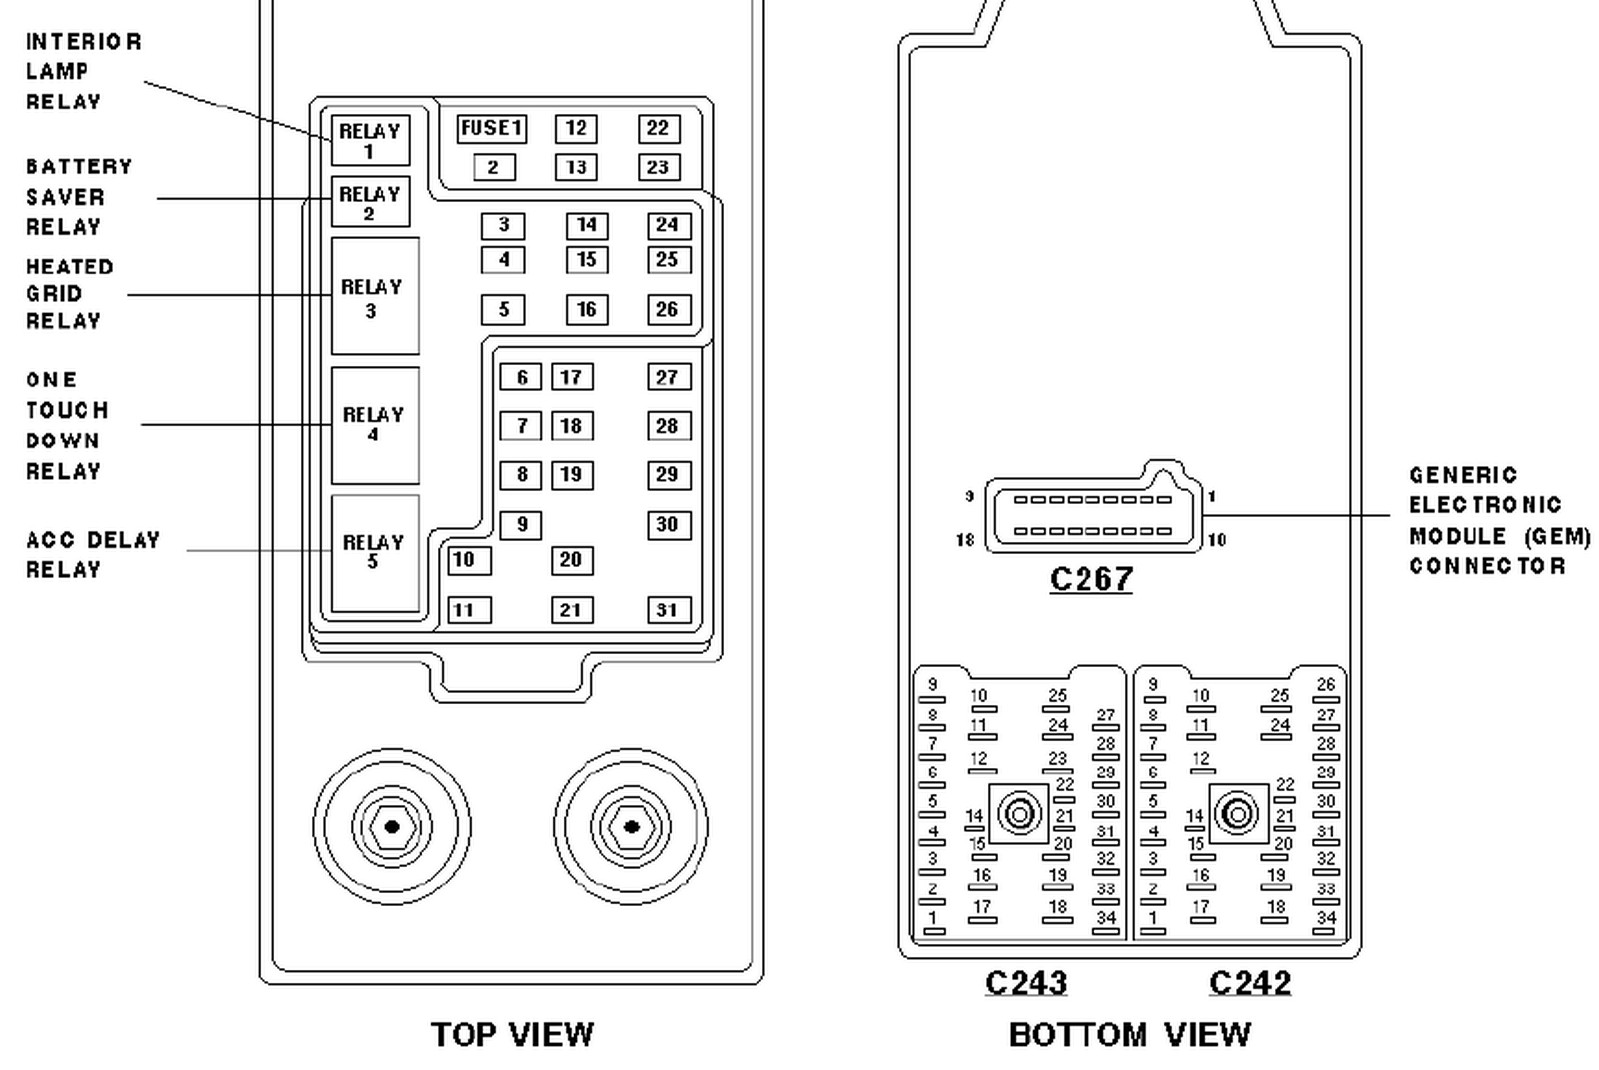 hight resolution of ford f750 fuse box wiring library 2006 ford f650 fuse diagram 1997 ford expedition fuse box